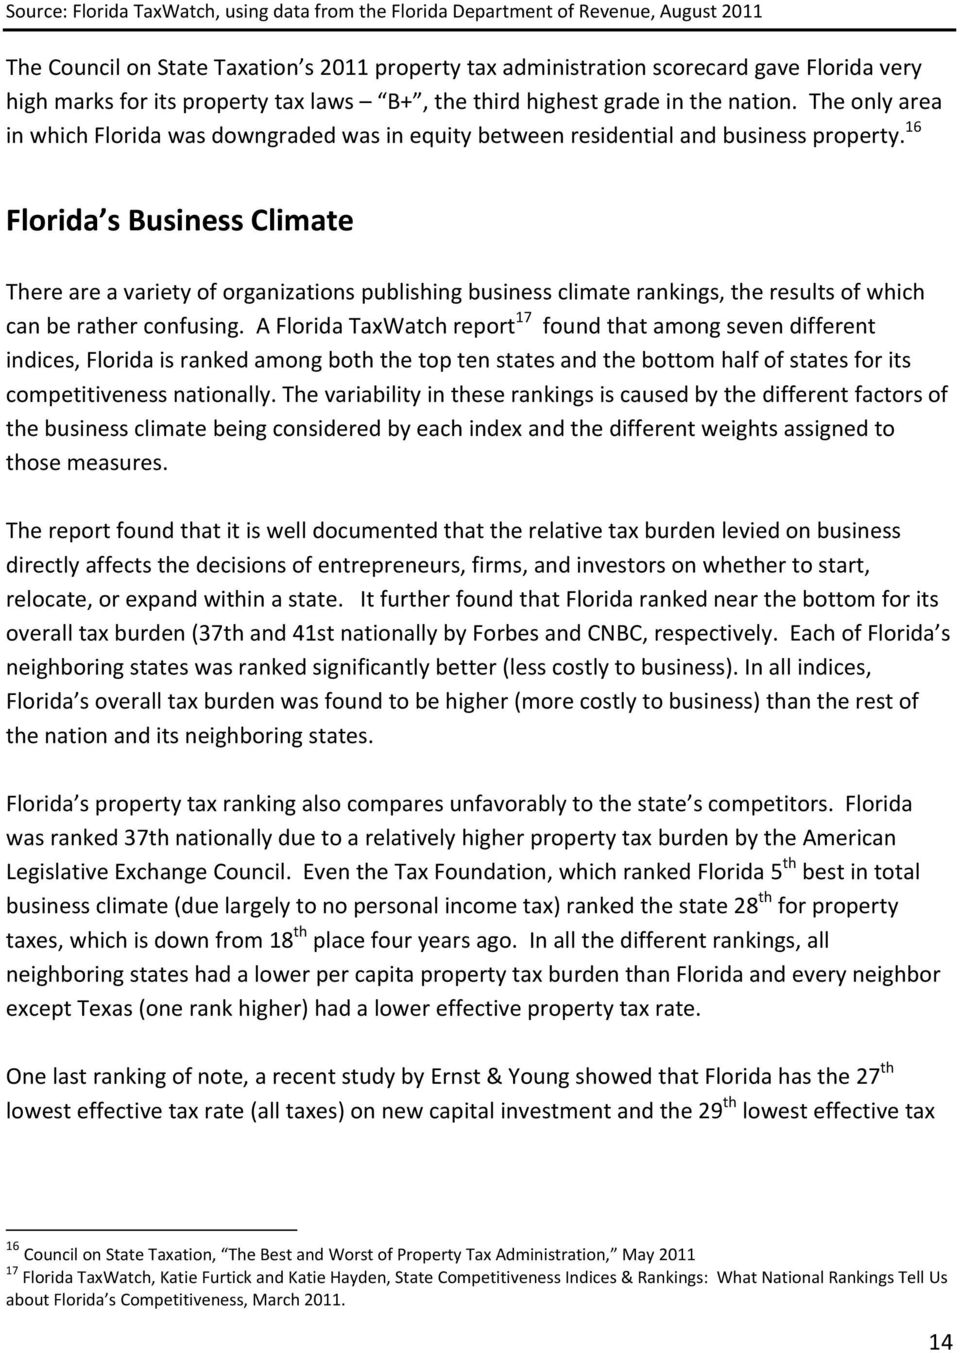 16 Florida sbusinessclimate Thereareavarietyoforganizationspublishingbusinessclimaterankings,theresultsofwhich canberatherconfusing.